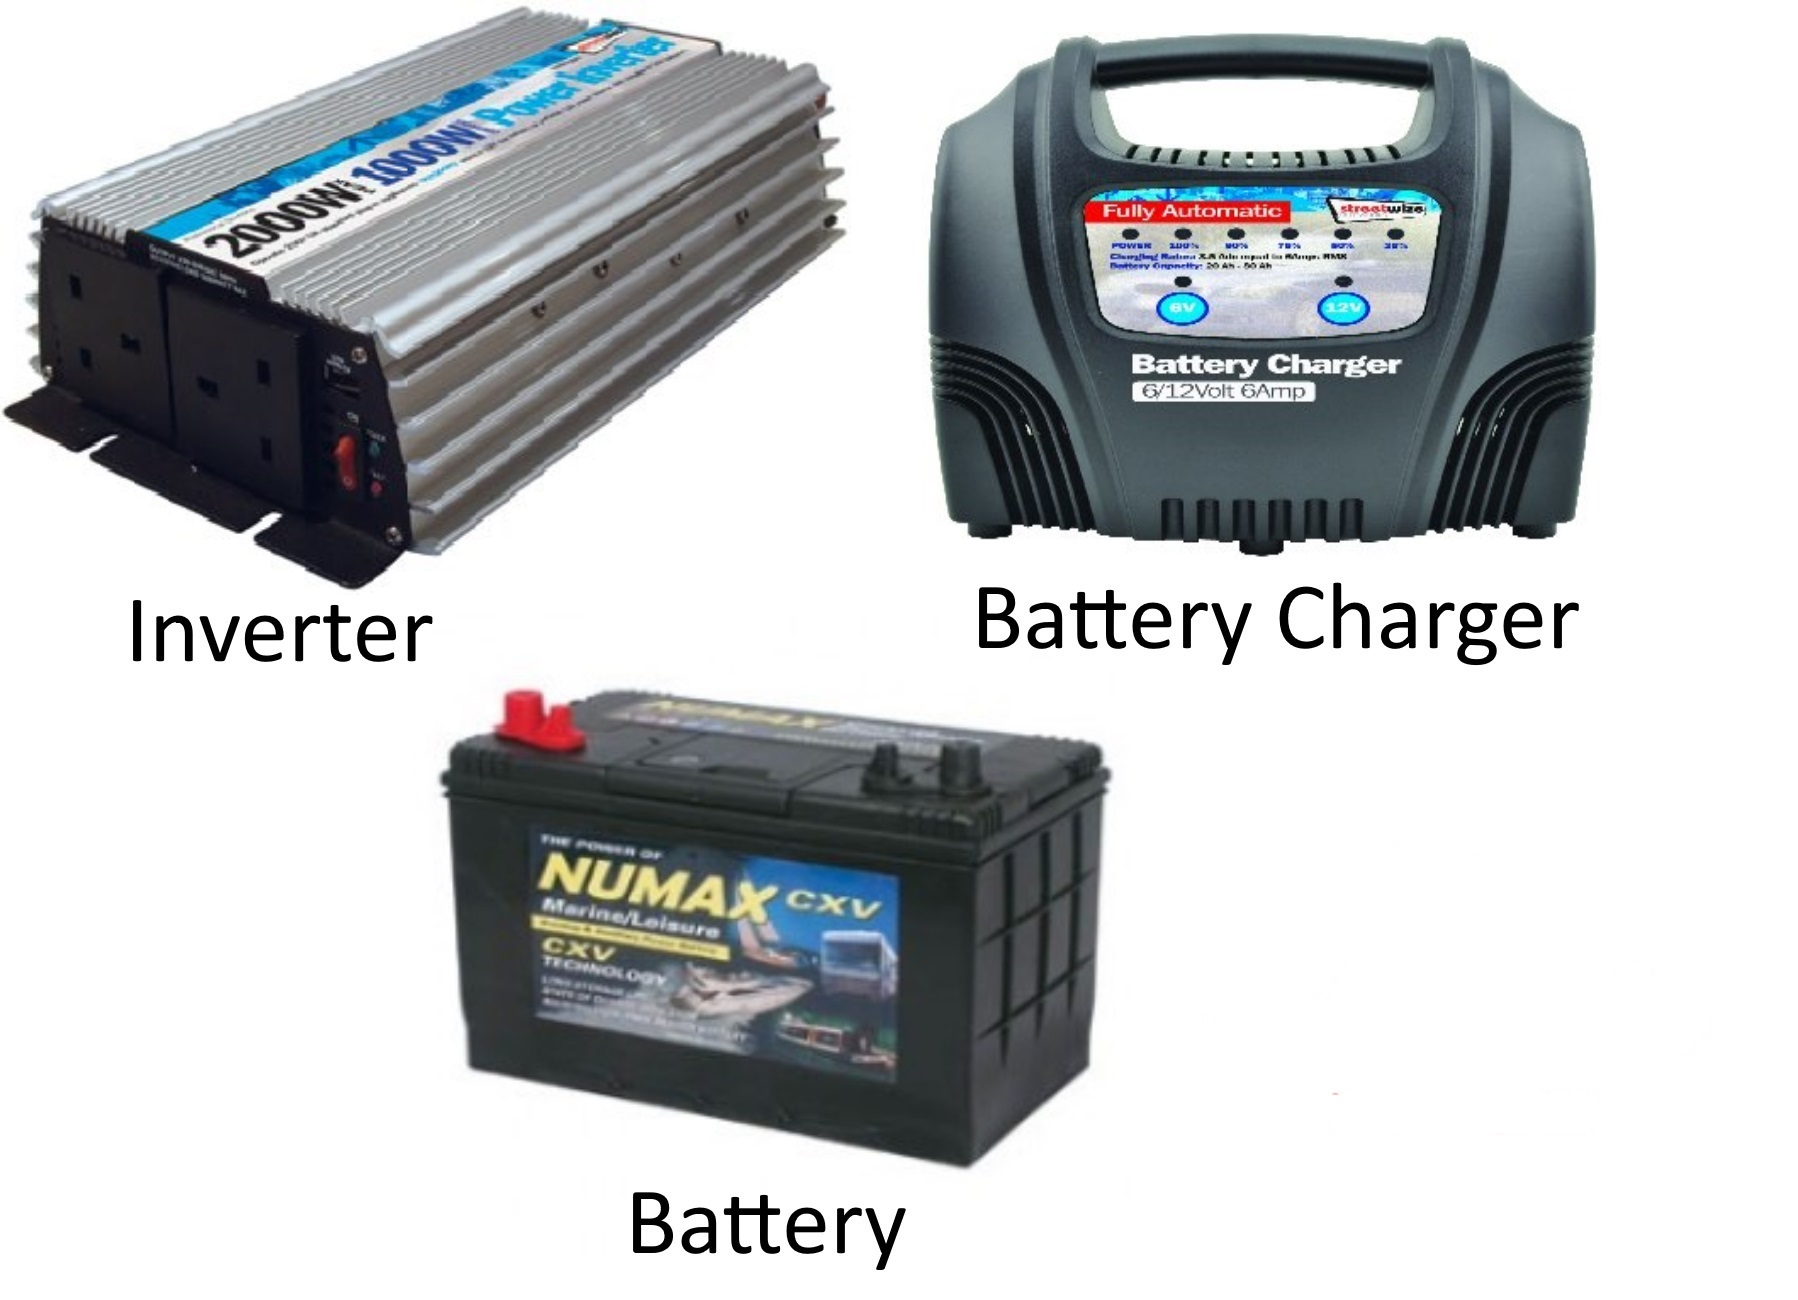 12v Mobile Pack Inverter, Charger and Battery - £306 00 : Snowy Cones